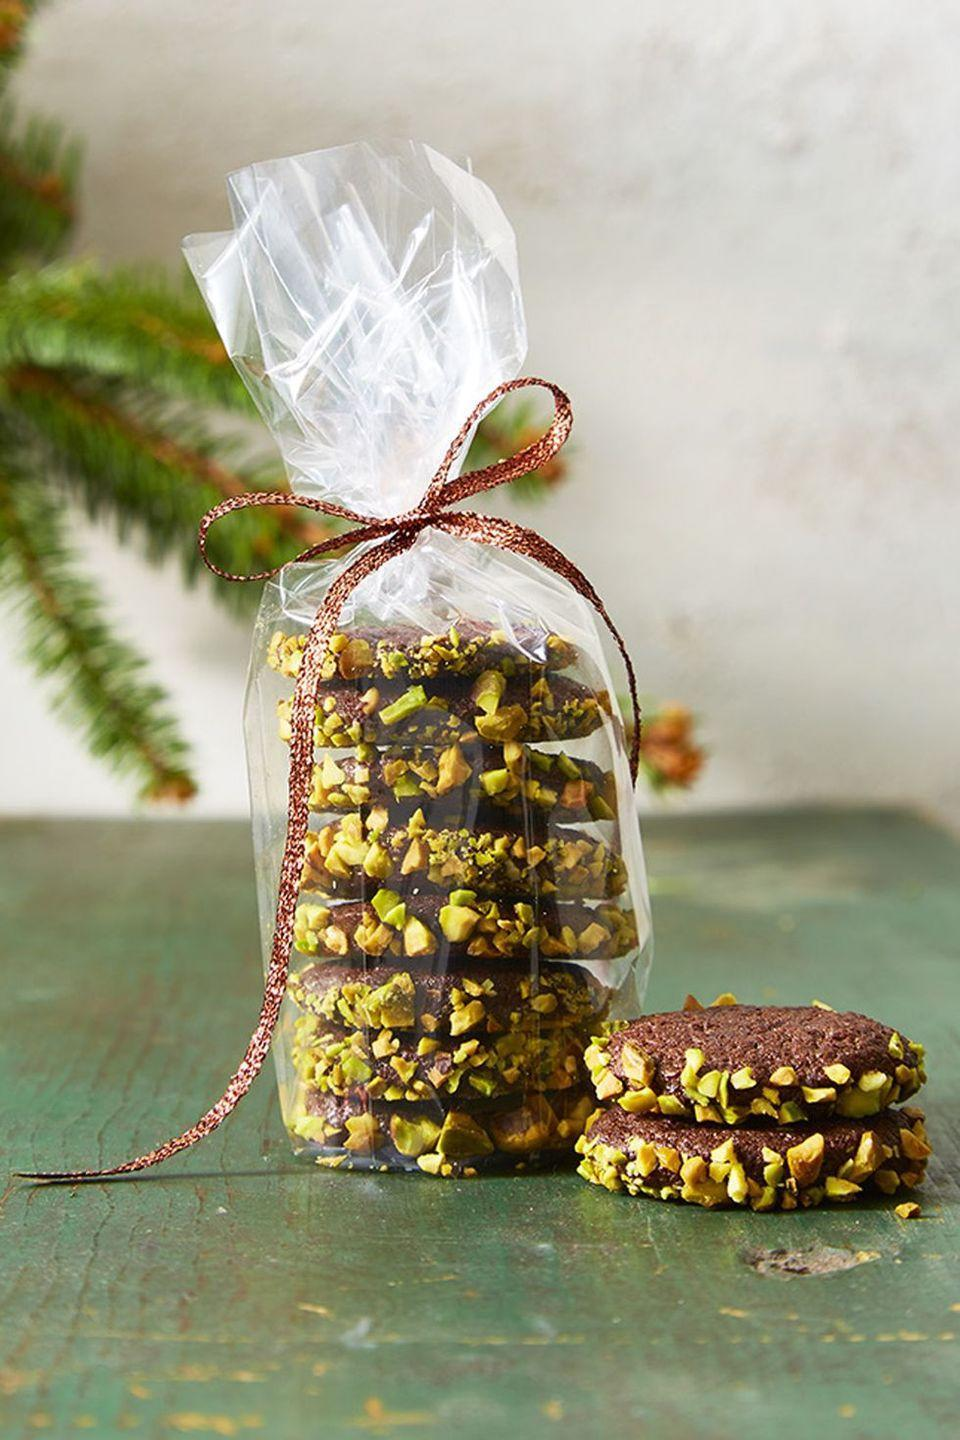 "<p>Roll logs of the chocolate cookie dough in pistachios, then slice and enjoy a sweet and salty bite (or two).</p><p><a href=""https://www.goodhousekeeping.com/food-recipes/dessert/a46923/slice-and-bake-chocolate-and-pistachio-cookies-recipe/"" rel=""nofollow noopener"" target=""_blank"" data-ylk=""slk:Get the recipe for Slice and Bake Chocolate and Pistachio Cookies »"" class=""link rapid-noclick-resp""><em>Get the recipe for Slice and Bake Chocolate and Pistachio Cookies »</em></a></p>"